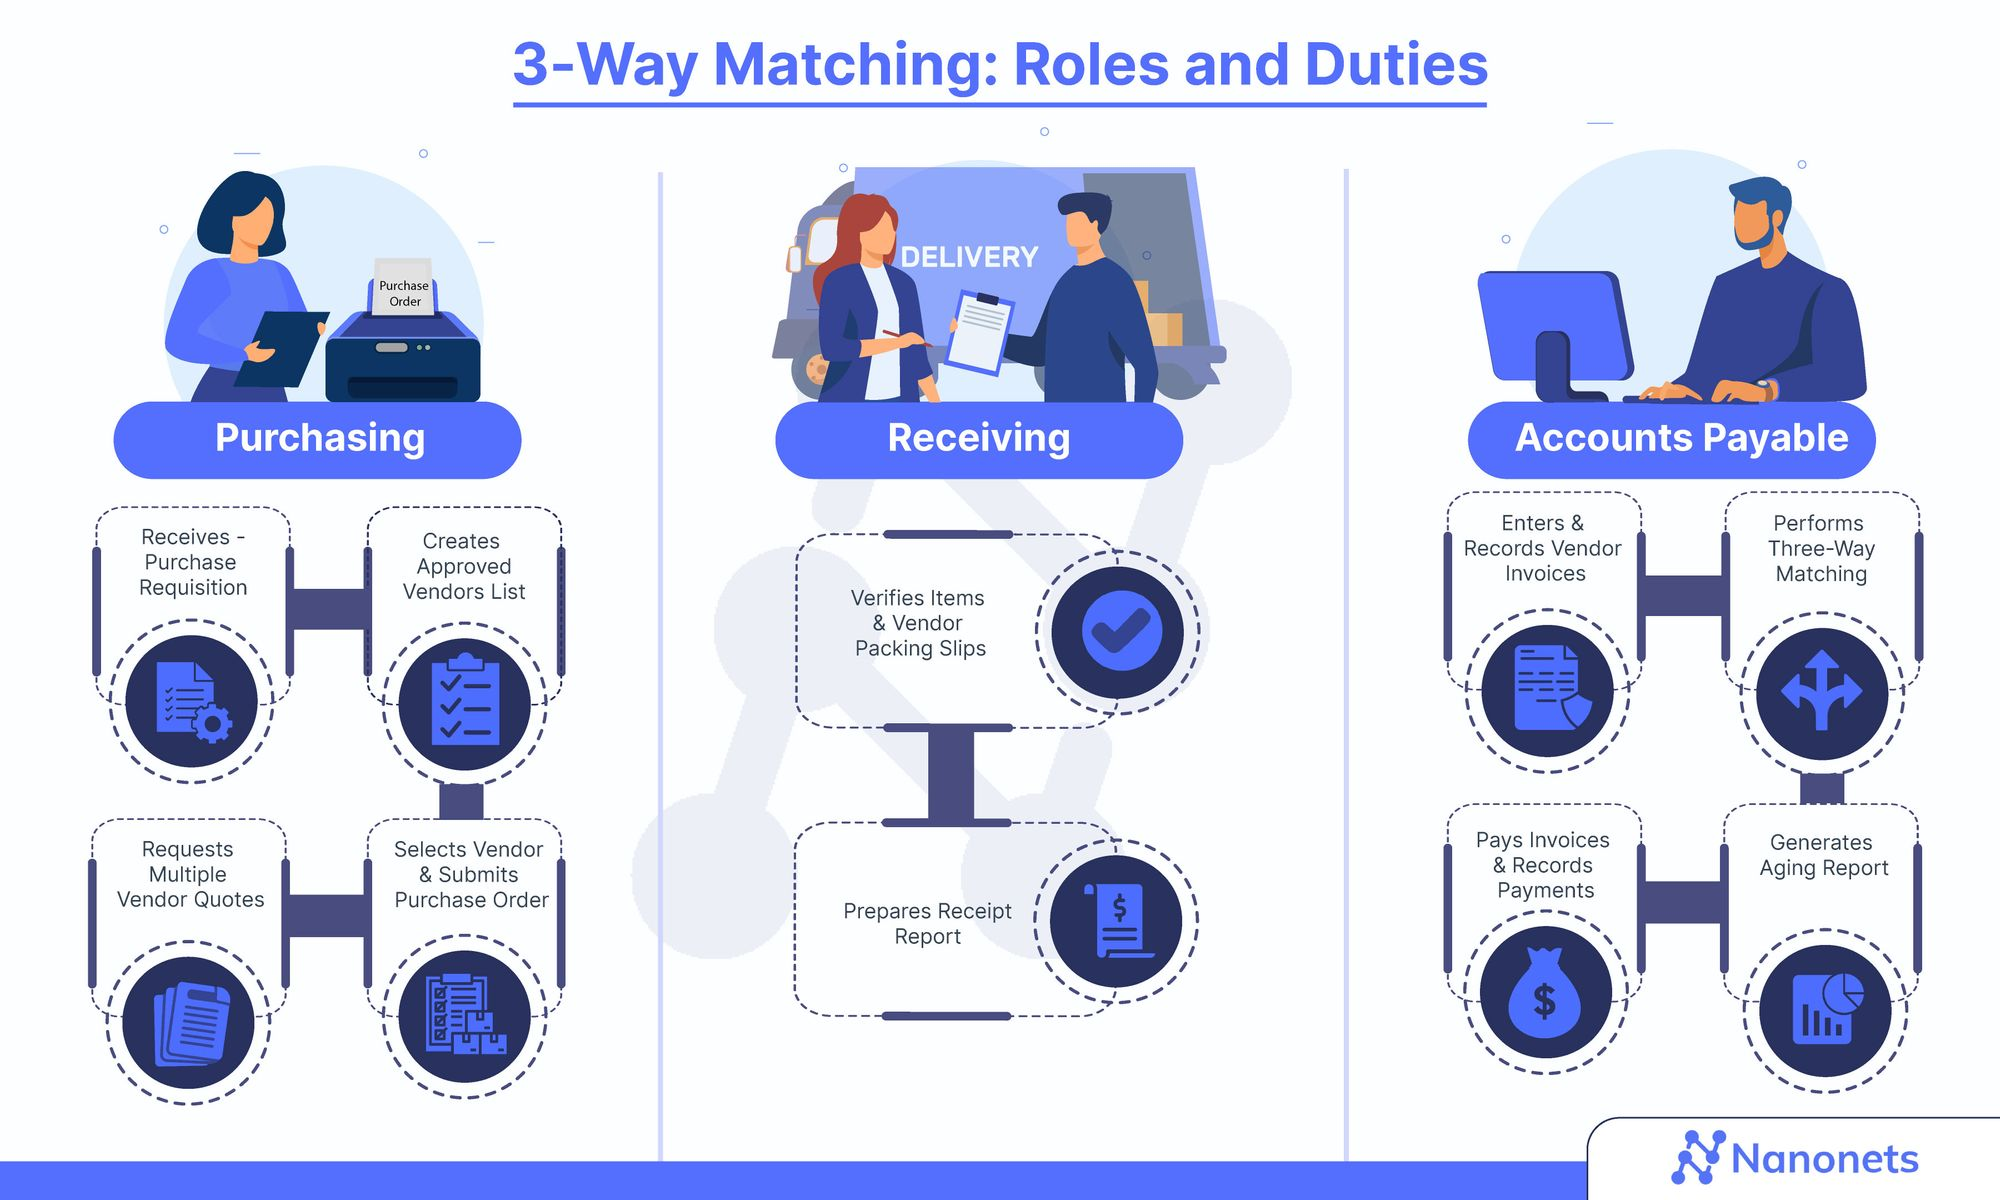 Three-Way Matching: Roles and Duties